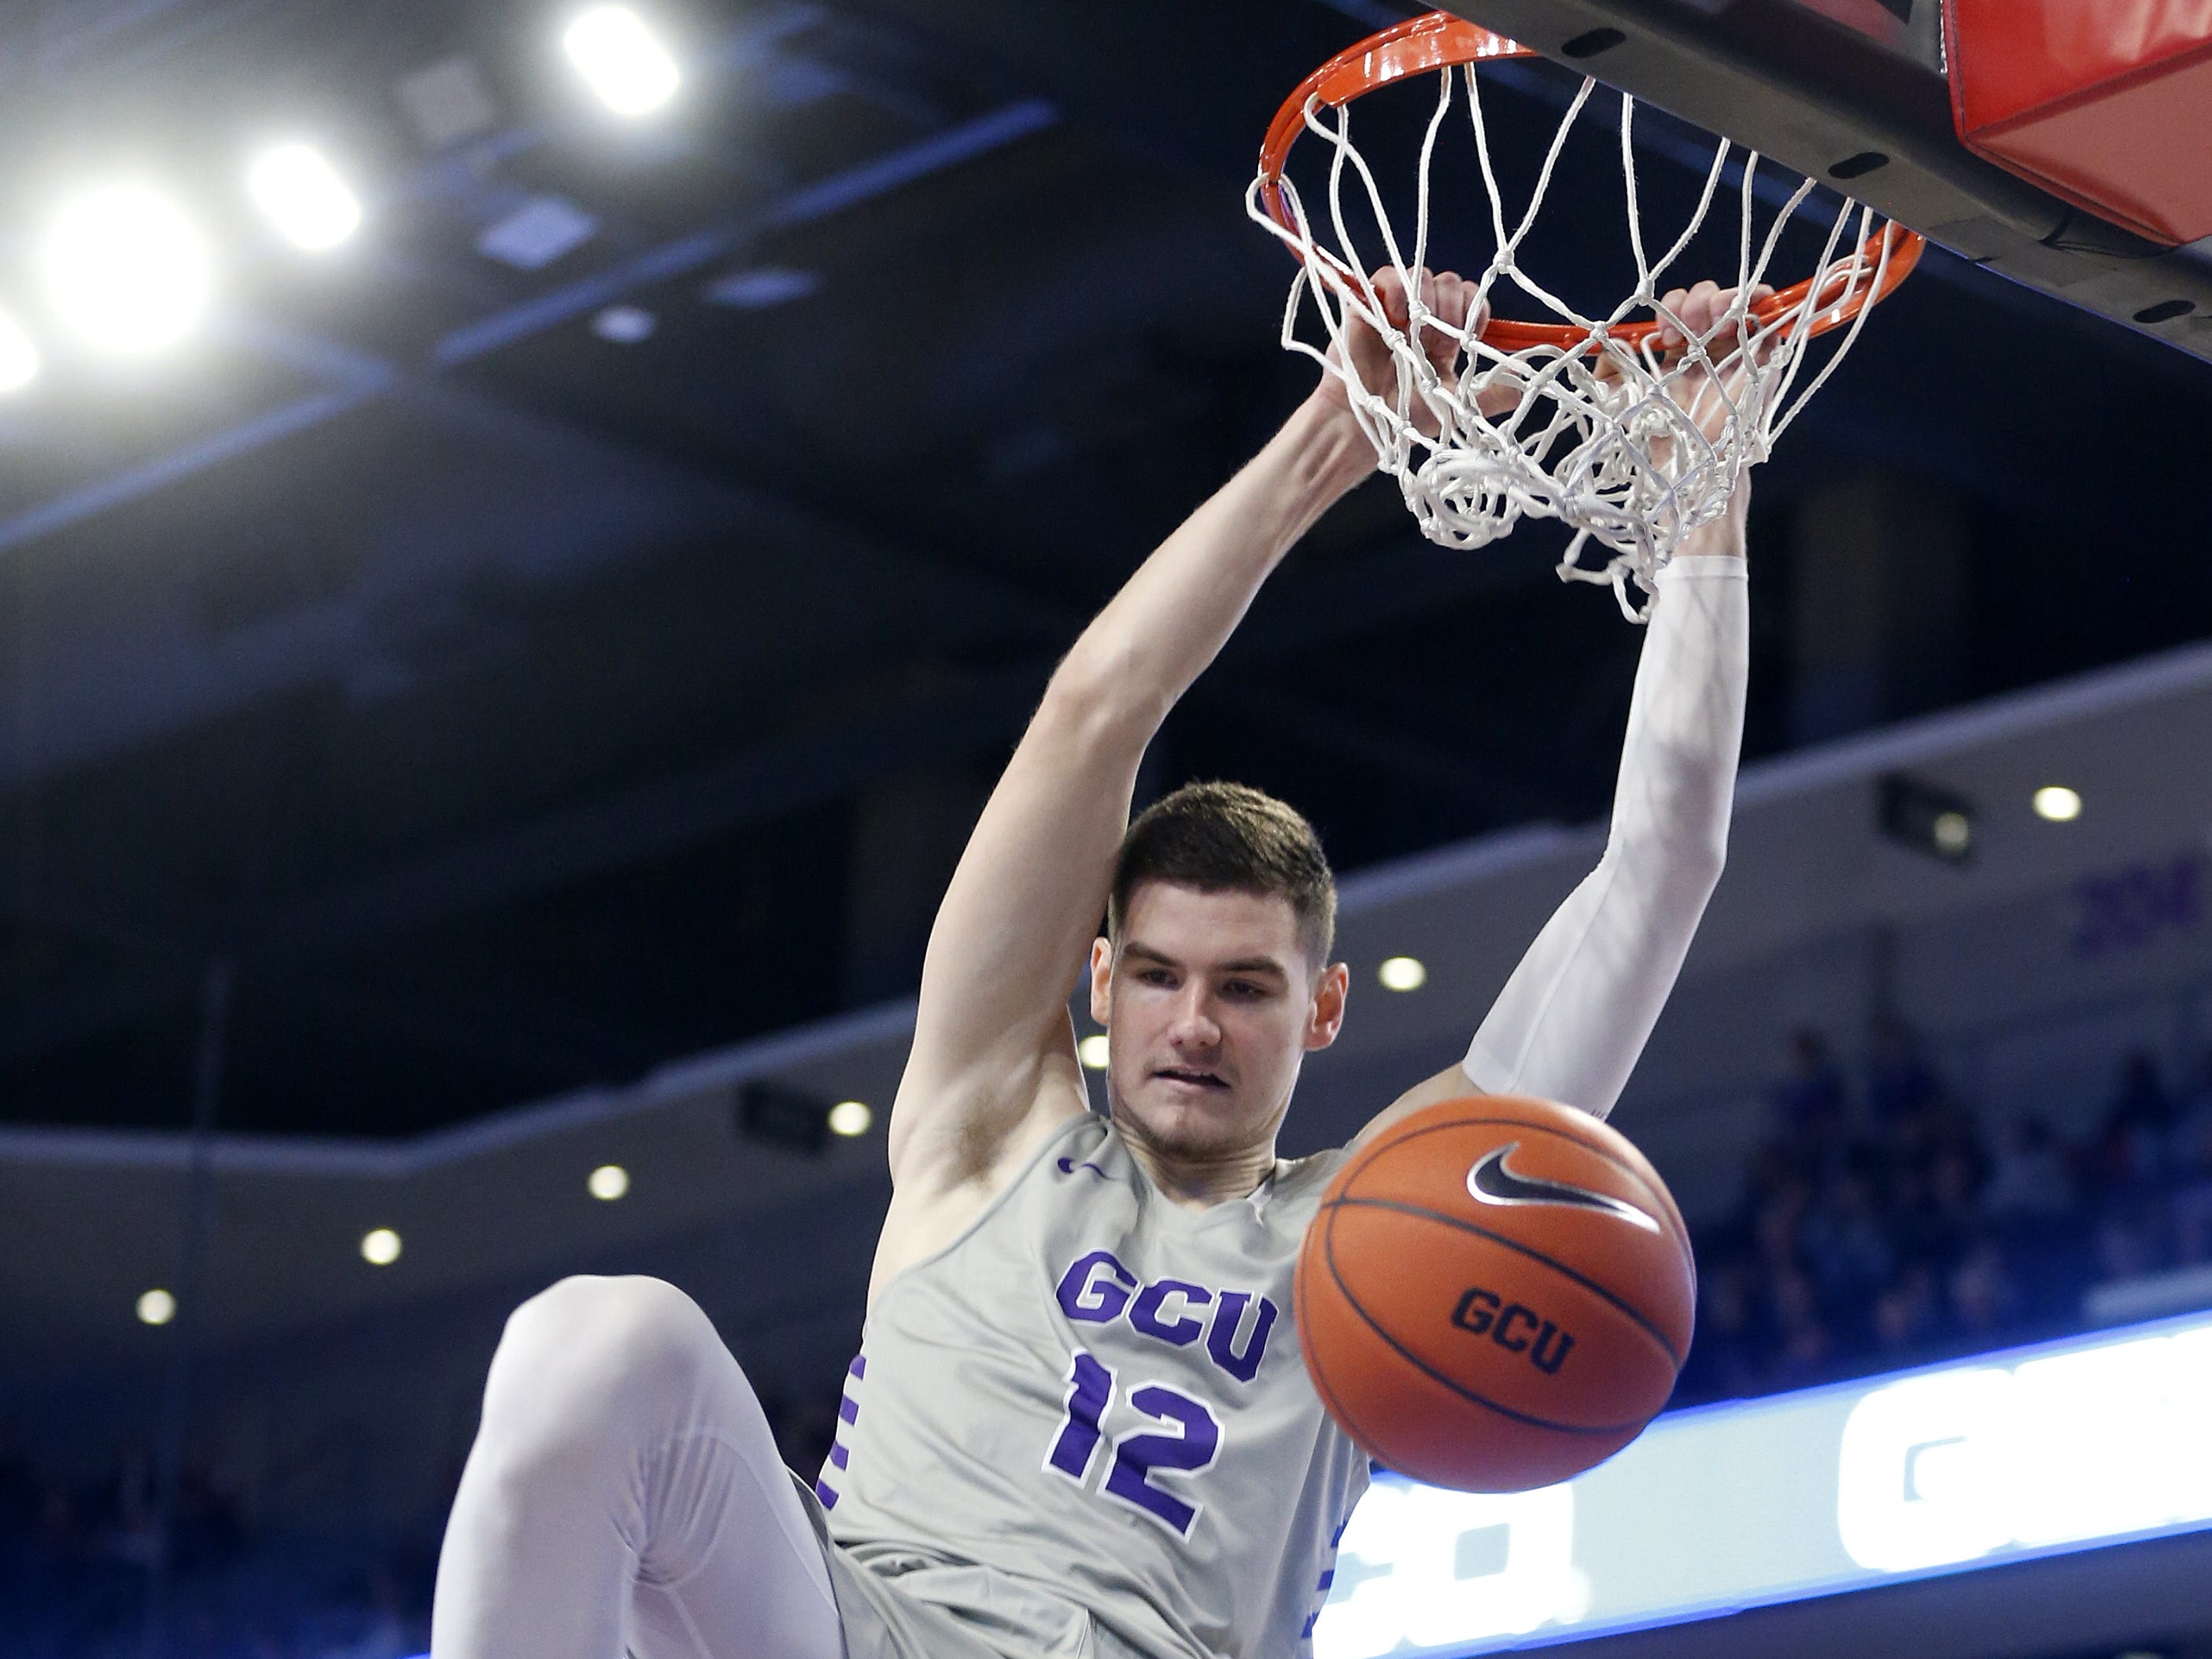 GCU's Roberts Blumbergs (12) dunks against Chicago State University during the first half at Grand Canyon University Arena in Phoenix, Ariz. on January 17, 2019.